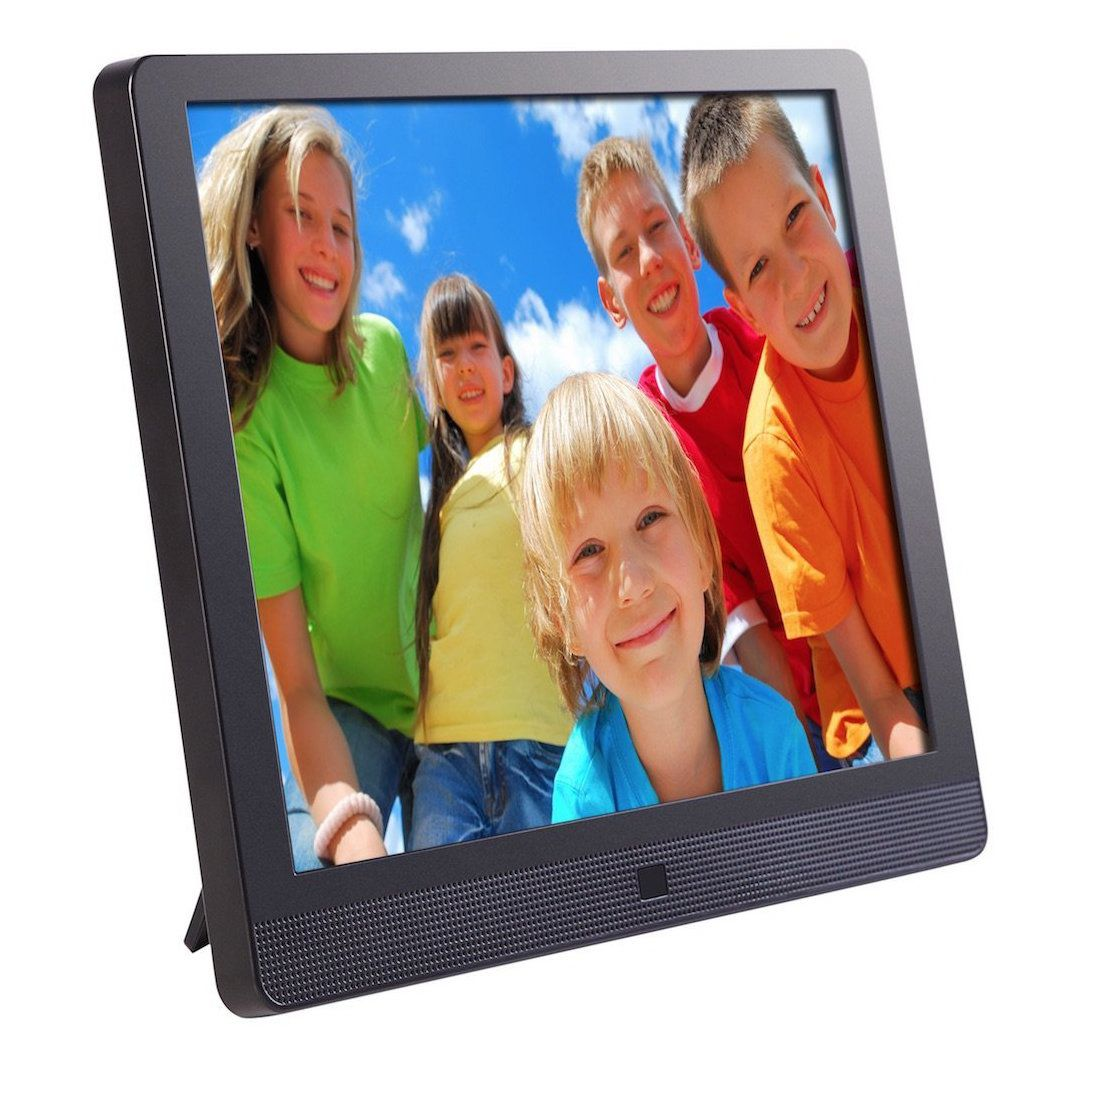 Pix-Star 10.4-inch Cloud Digital Photo Frame